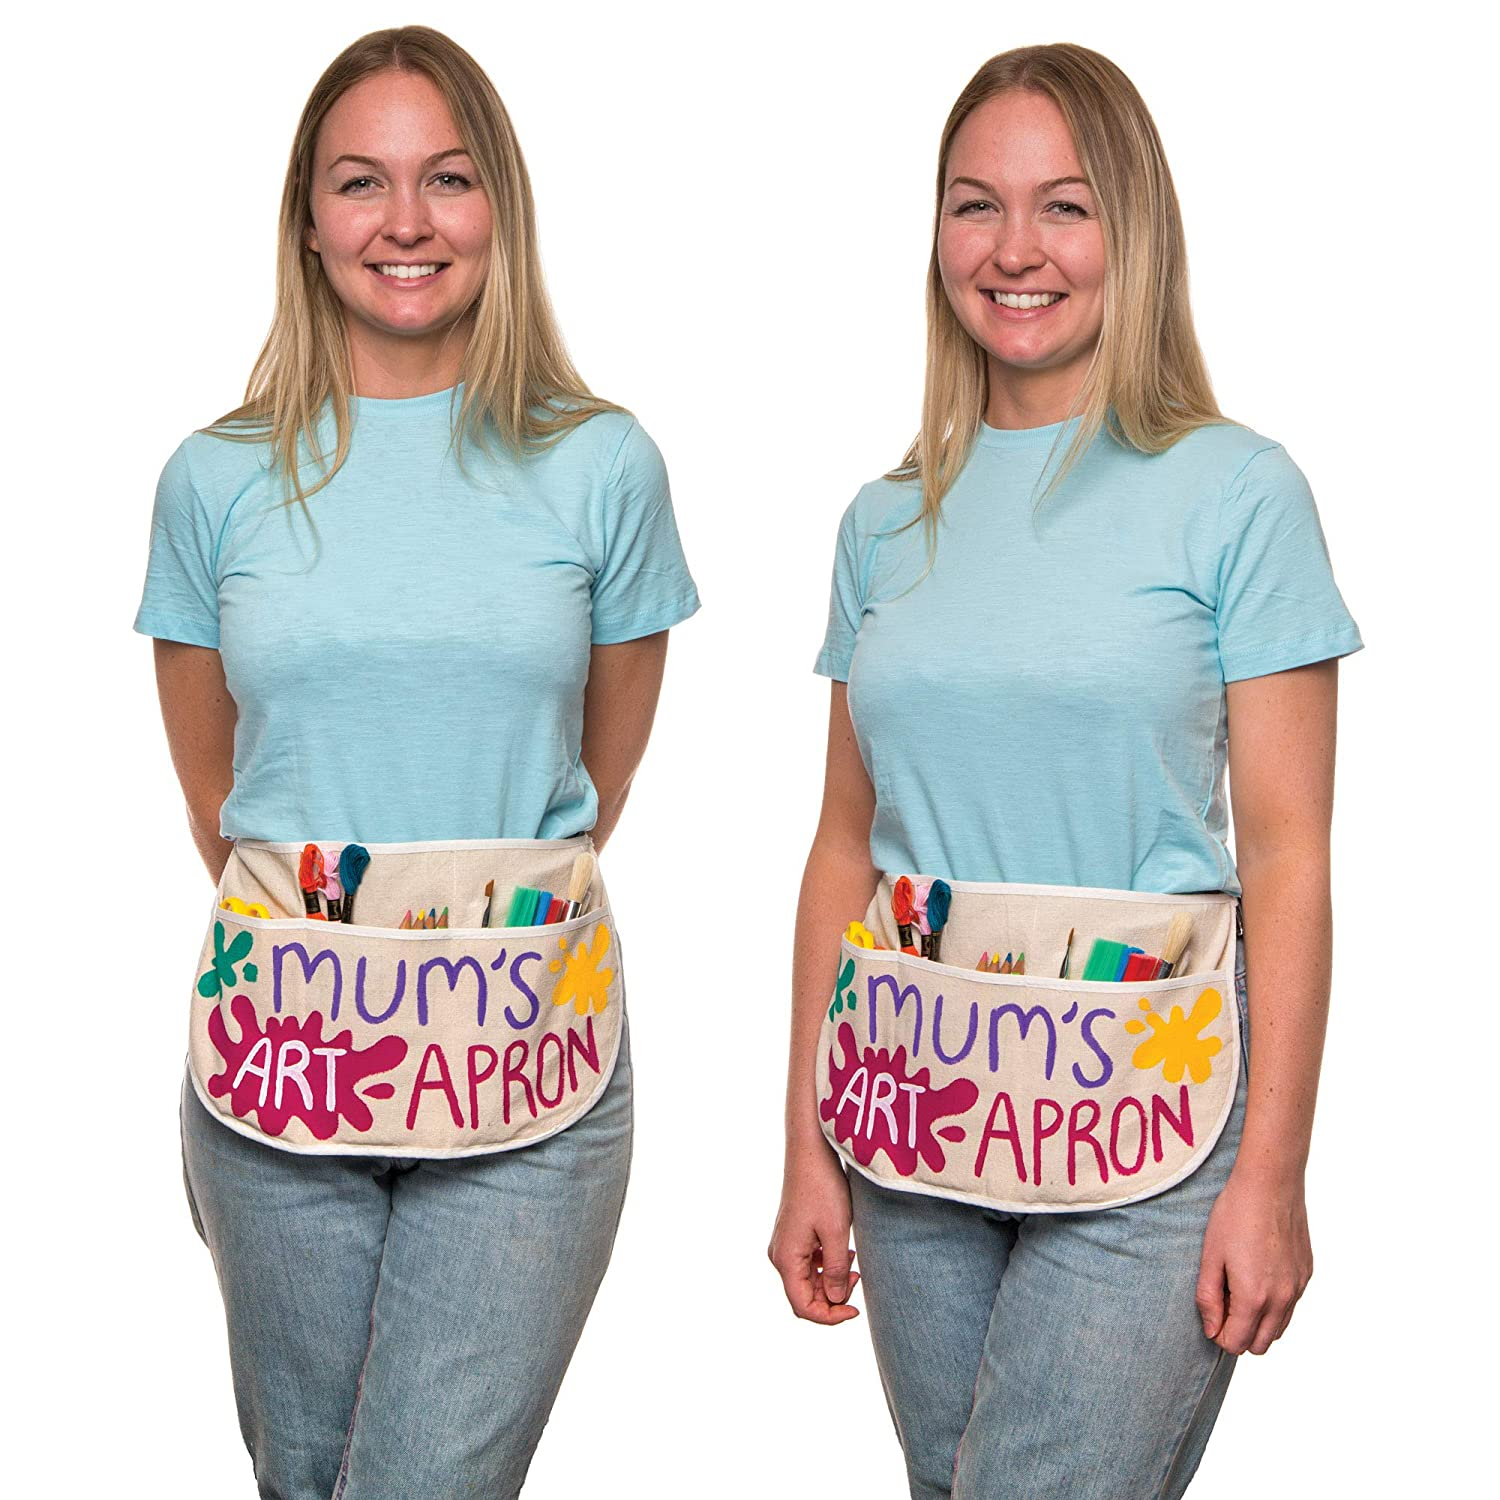 Baker Ross Fabric Waist Aprons Ideal for Cooking for Kids to Decorate and Personalize Pack of 3 Messy Play or Gifting